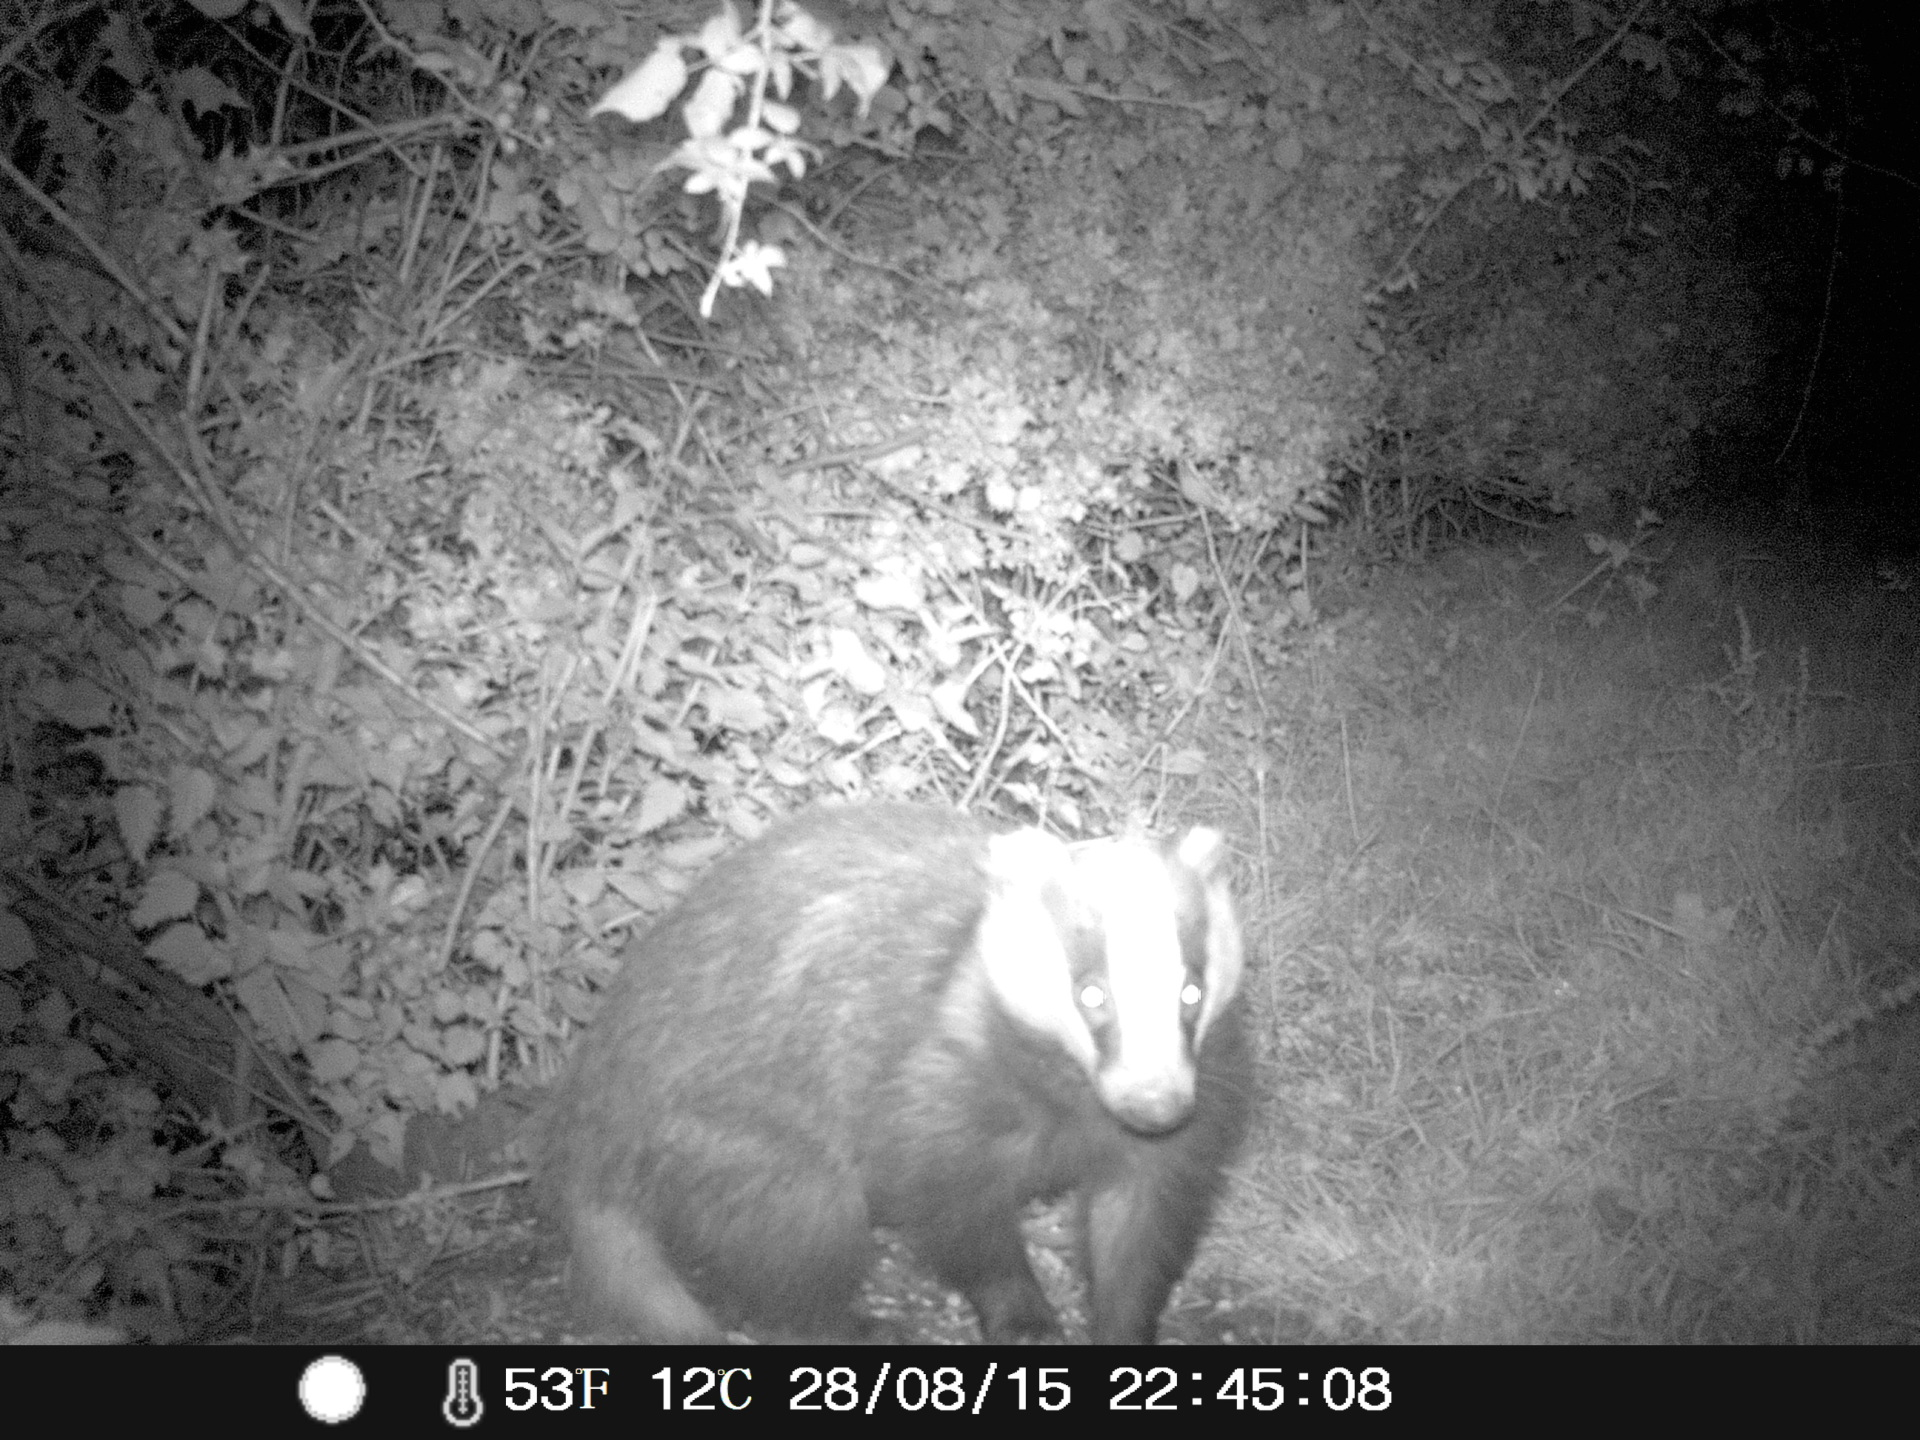 Badger surprised by flash